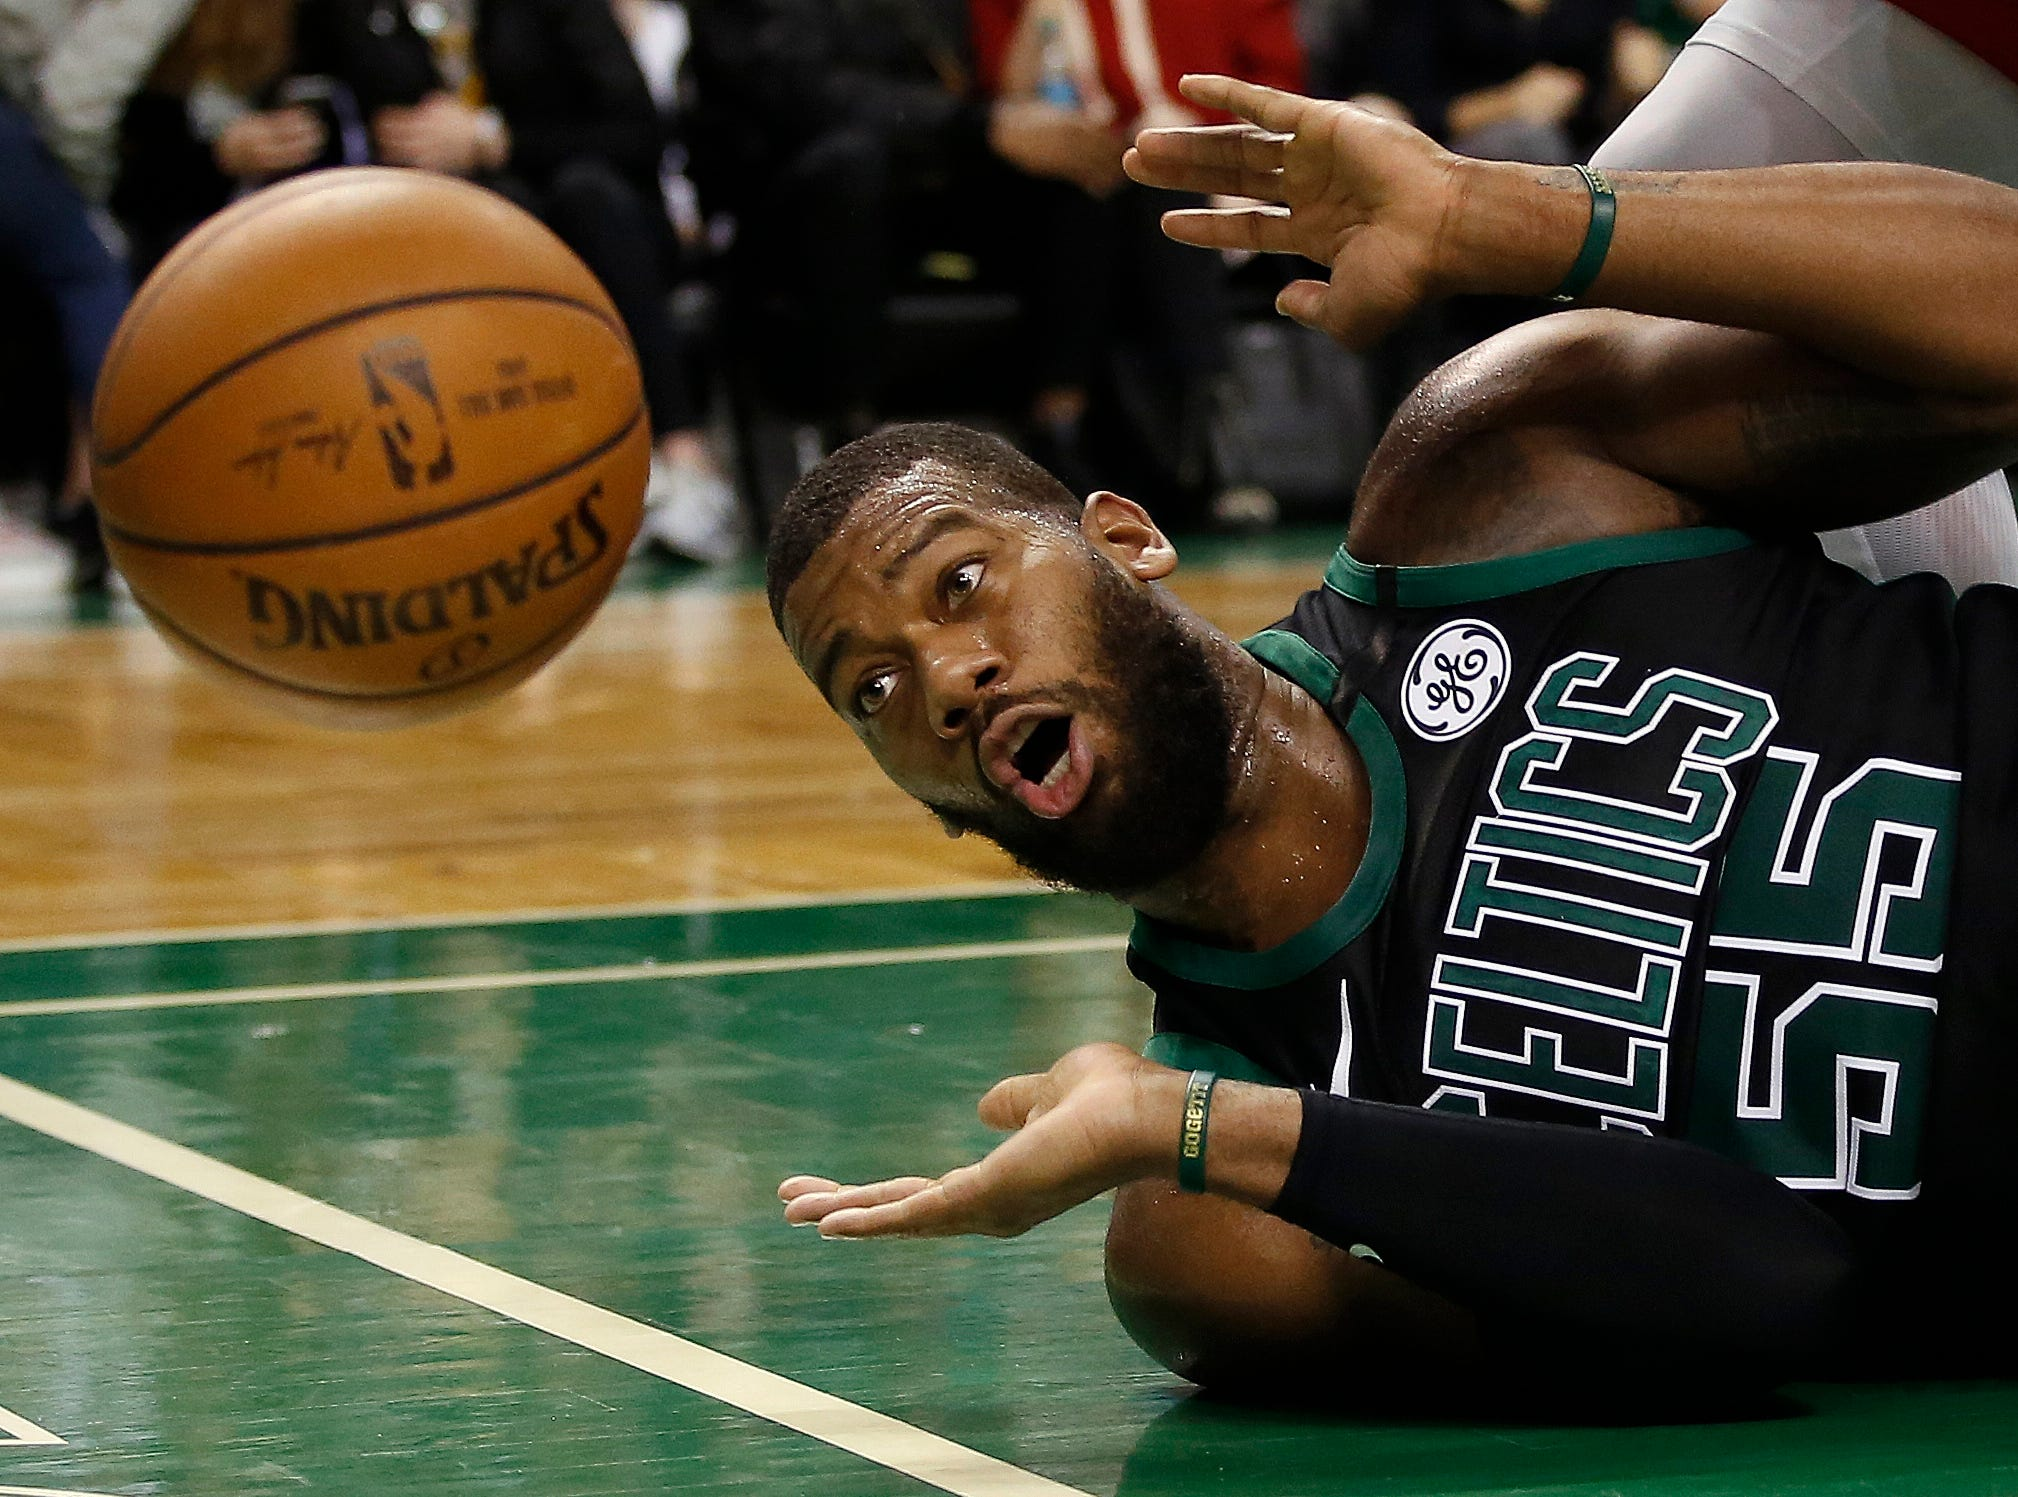 March 31: Boston Celtics center Greg Monroe (55) eyes a loose ball as it goes out of bounds during the second half of Boston's win over the Toronto Raptors at TD Garden.